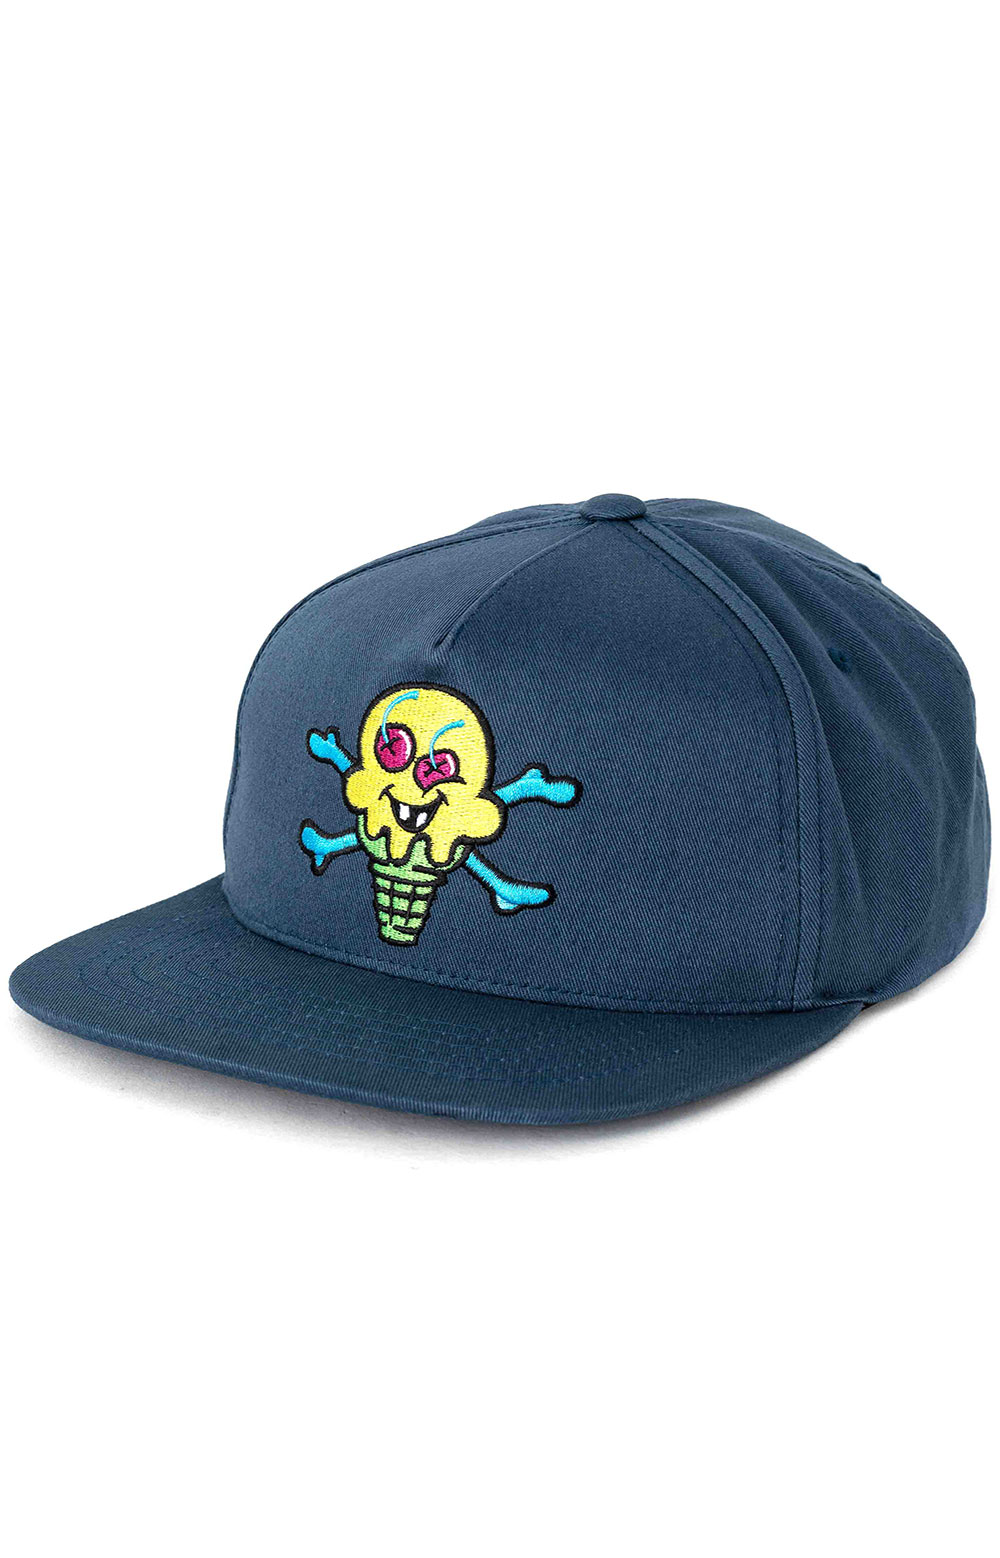 Green Cone Snap-Back Hat - Midnight